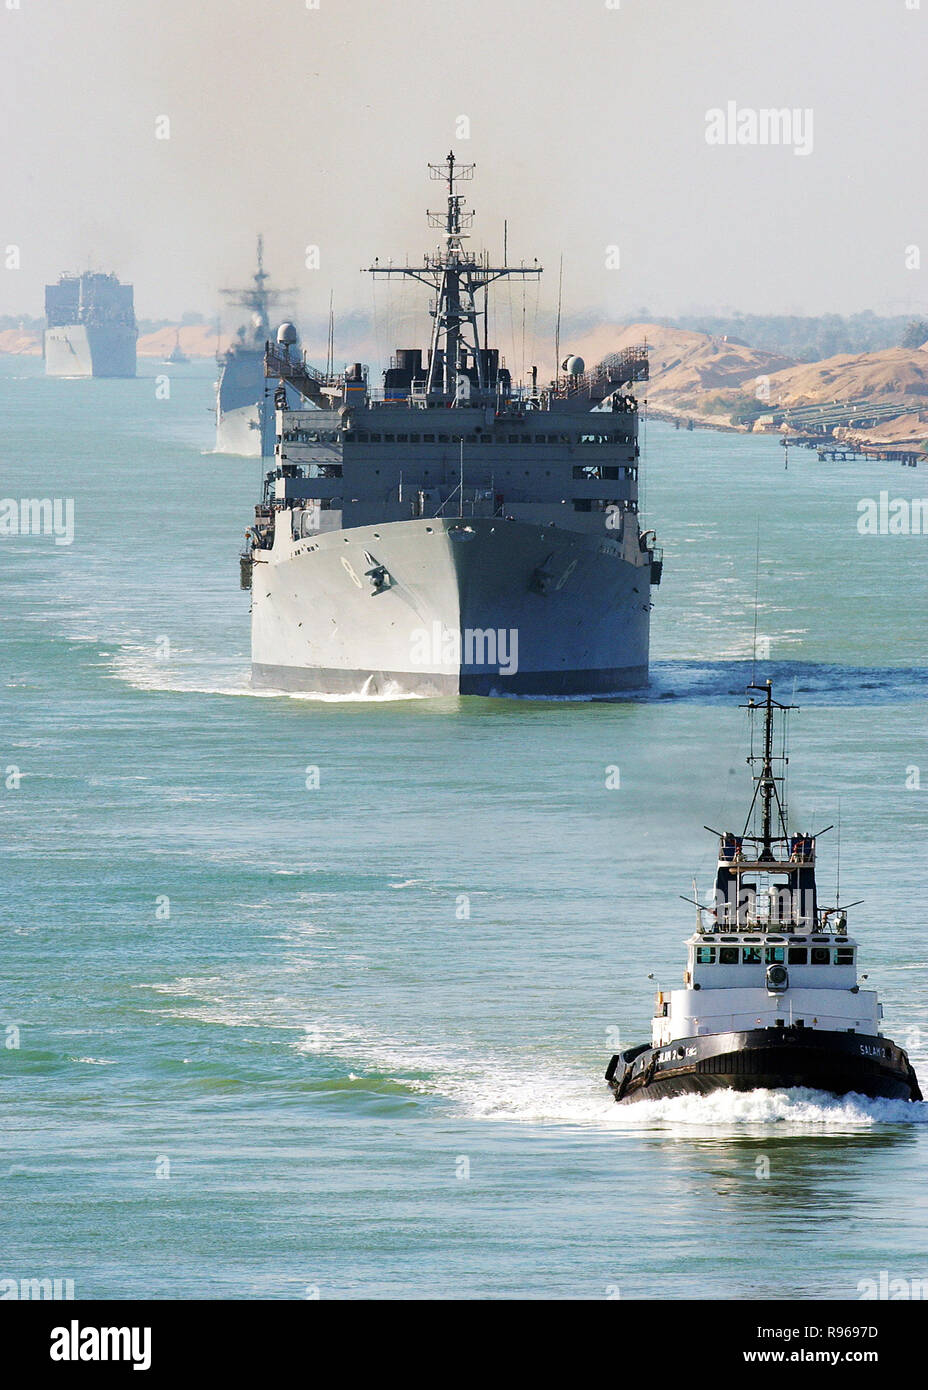 An Egyptian tugboat leads the fast combat support ship USNS Arctic (T-AOE 8), the guided missile cruiser USS Monterey (CG 61), and the combat stores ship USNS Spica (T-AFS 9) northward through the Suez Canal.  DoD photo by Airman Kristopher Wilson, U.S. Navy - Stock Image